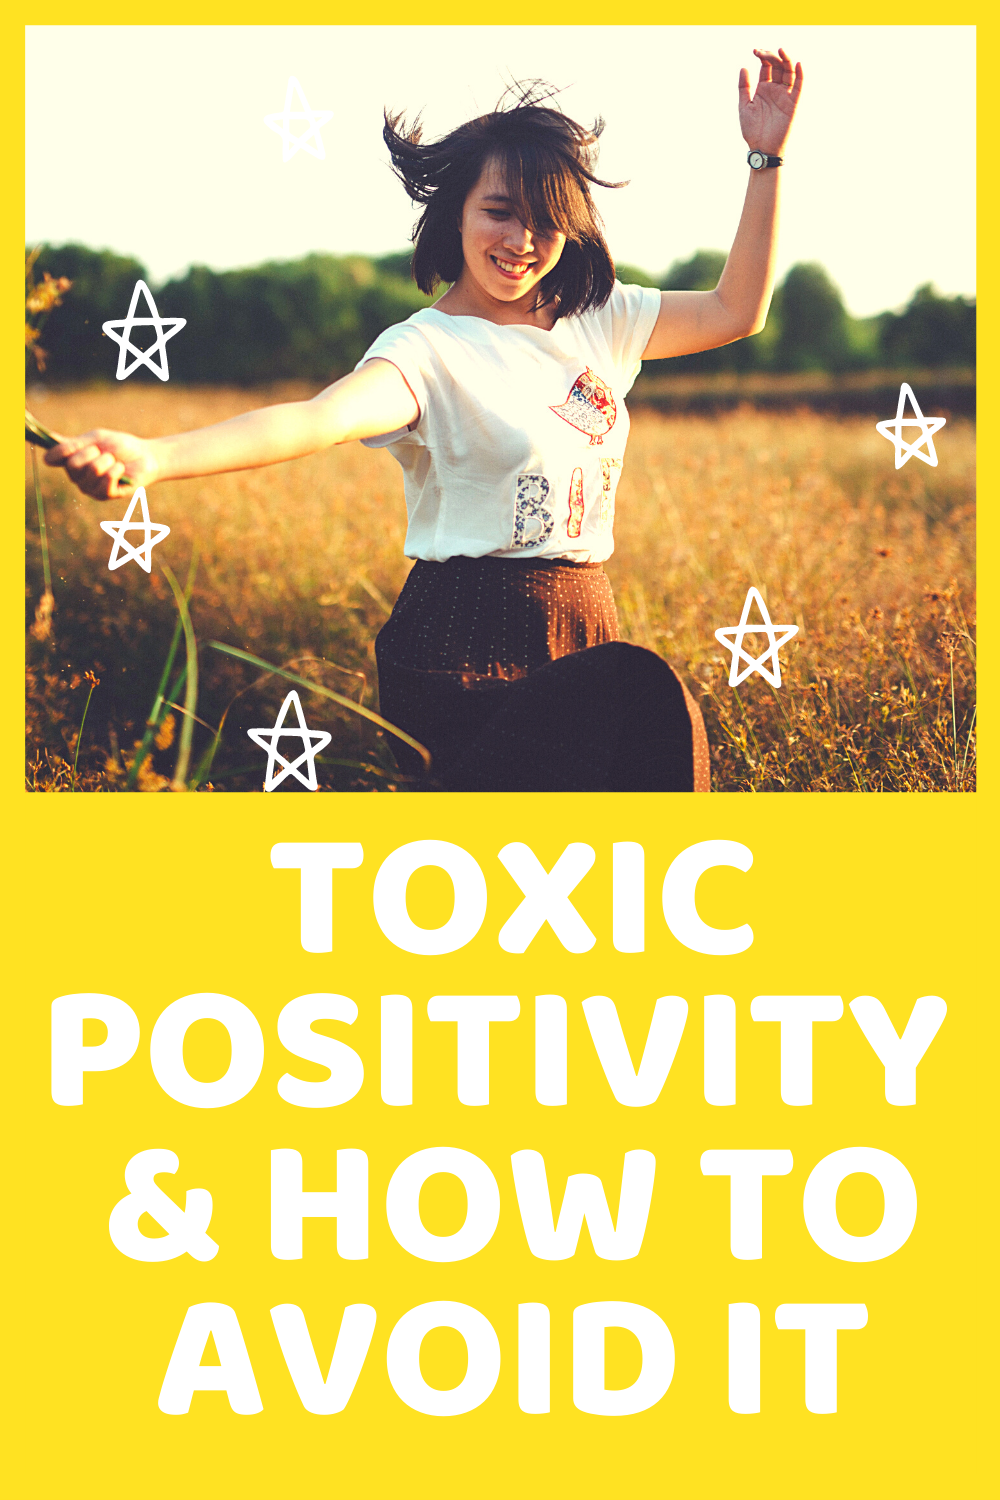 What is toxic positivity, examples of toxic positivity, being positive without being toxic and avoiding toxic people